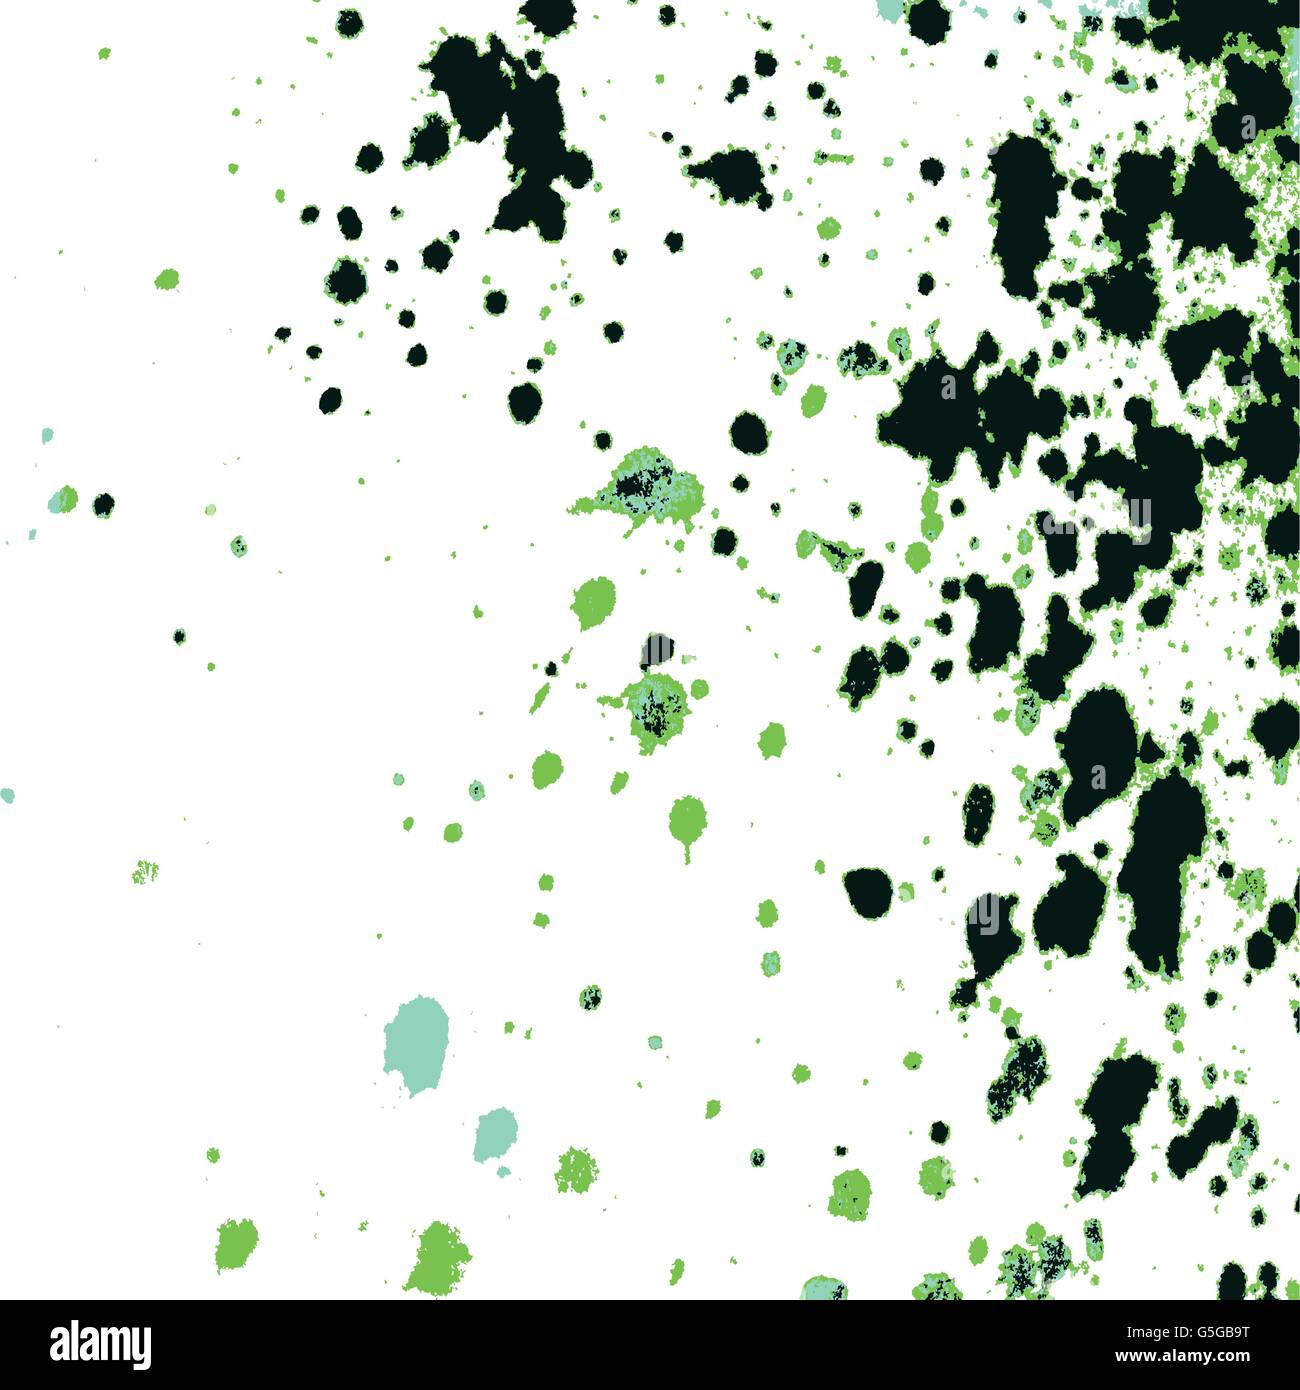 Colorful acrylic paint green and black splatter on white